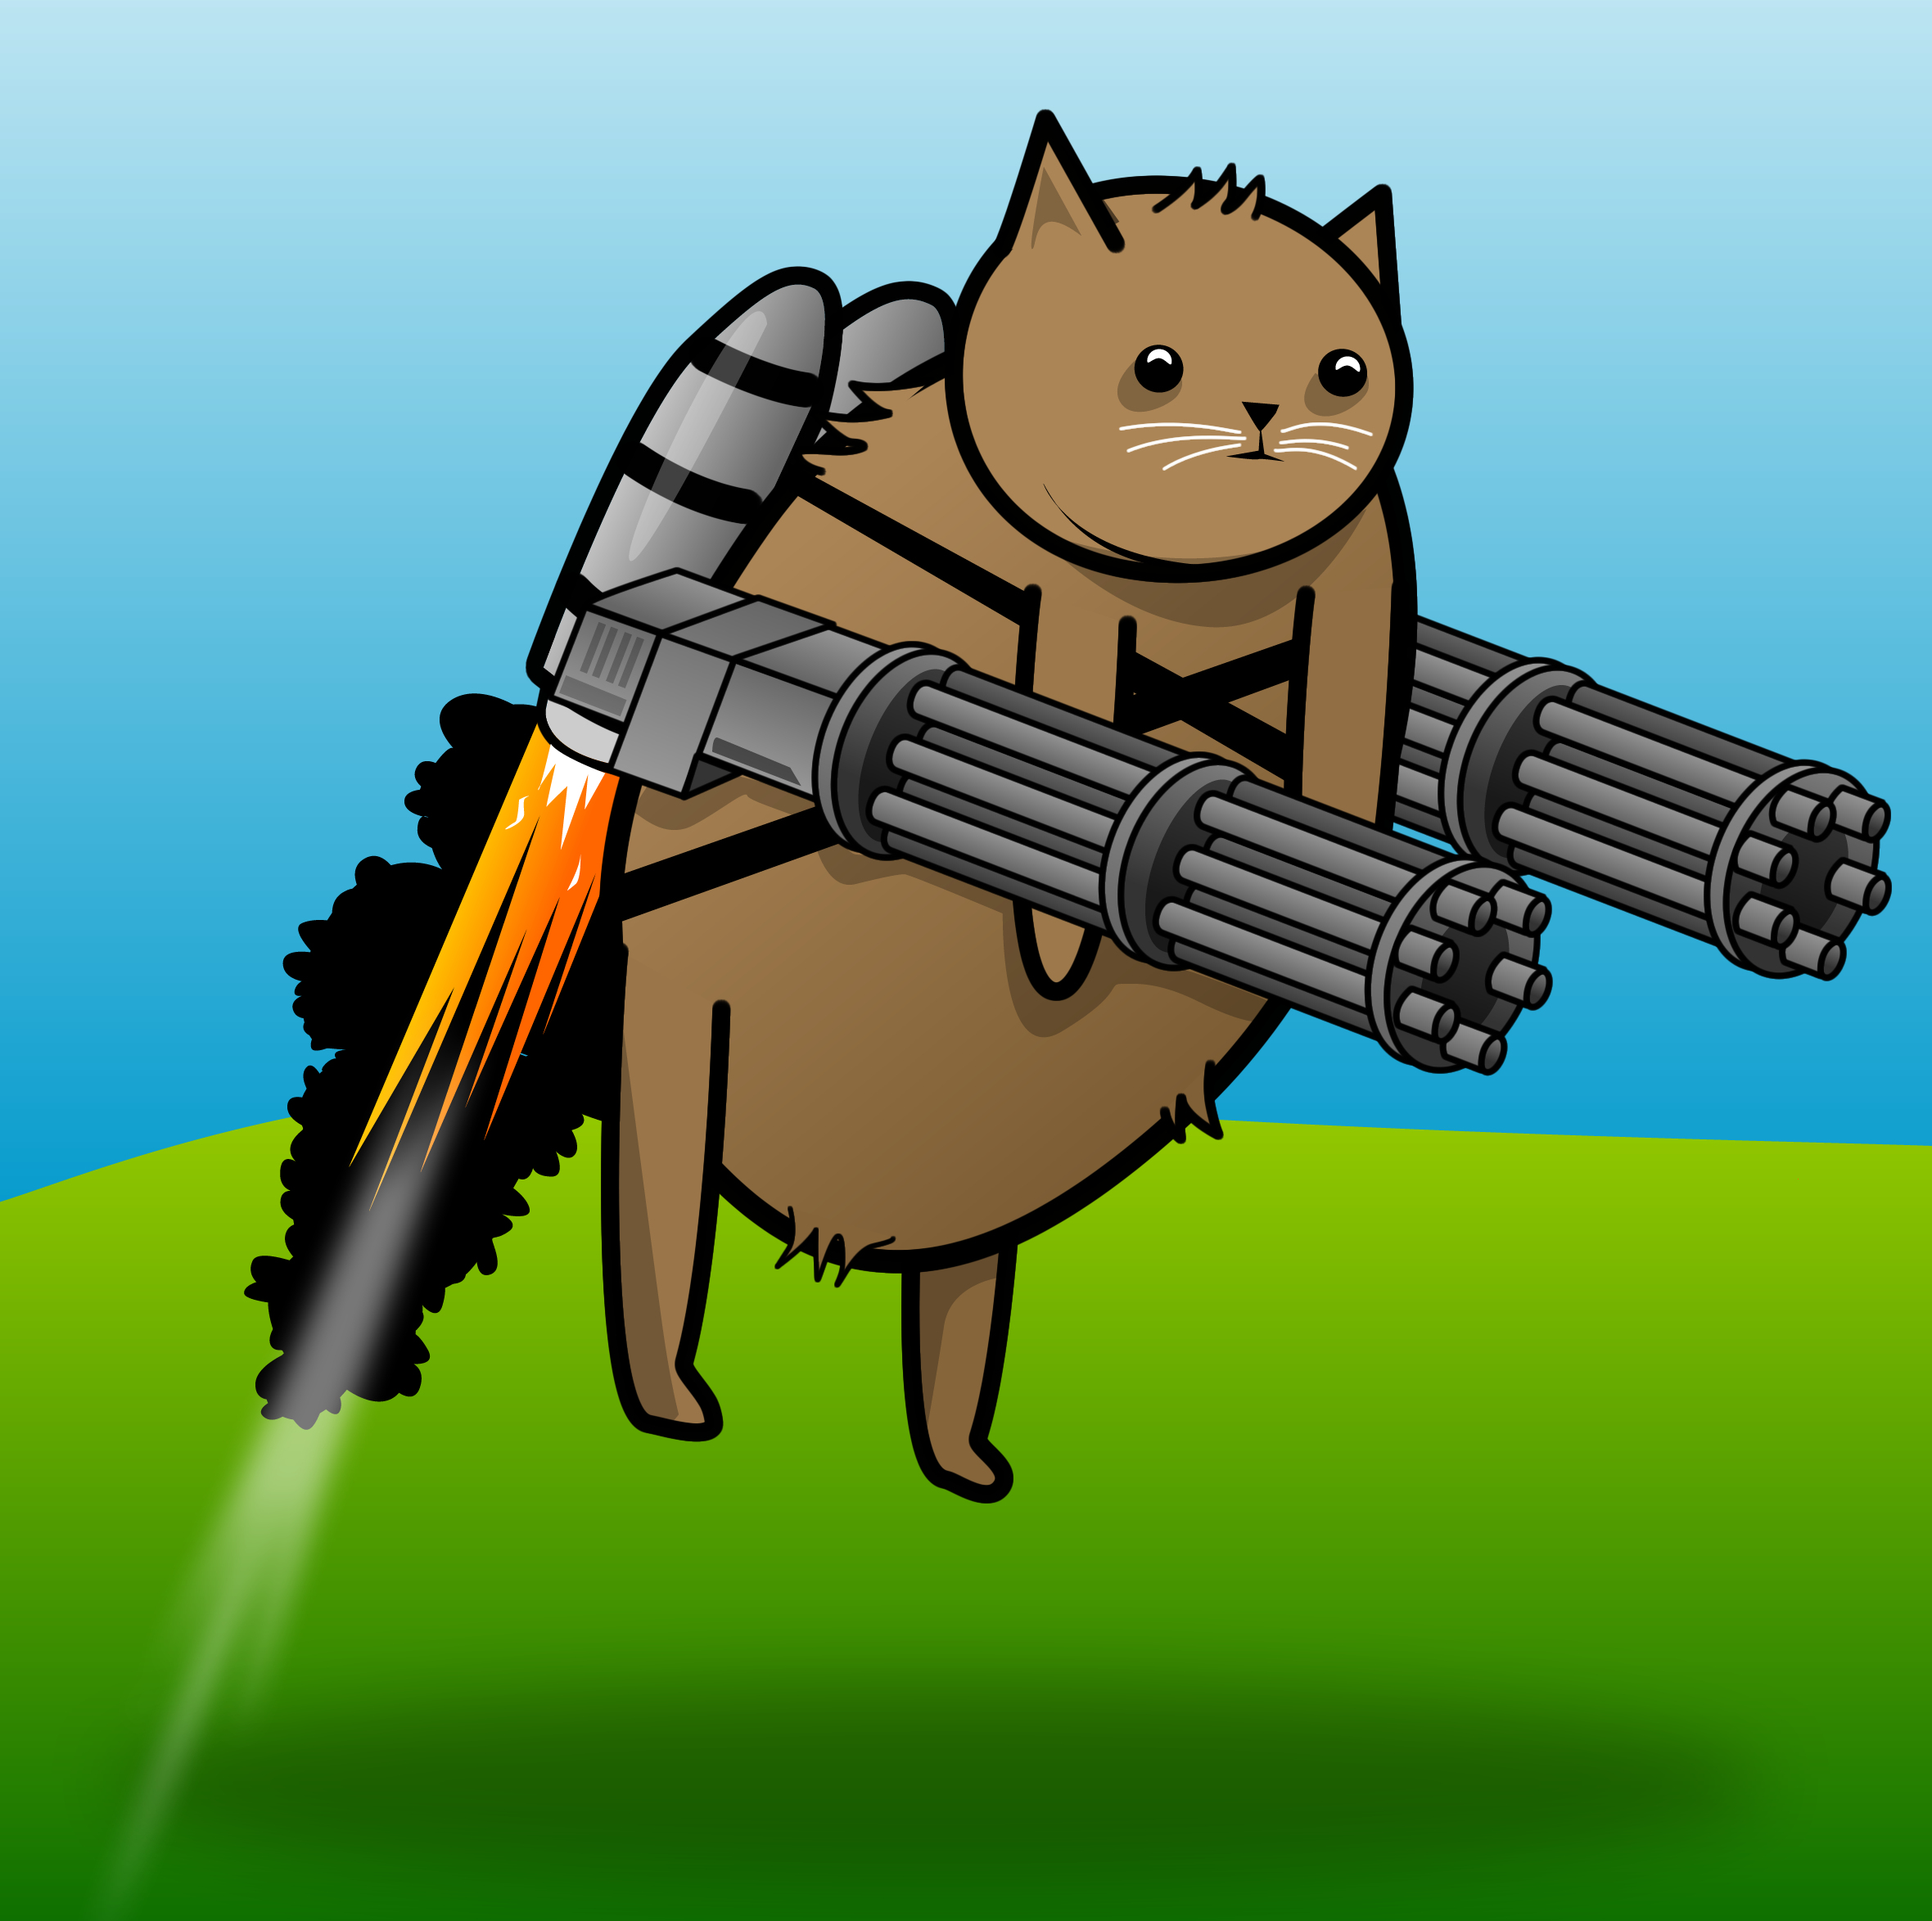 Cat Avatar Maker 2: Does Anyone Have This In A Wider Resolution